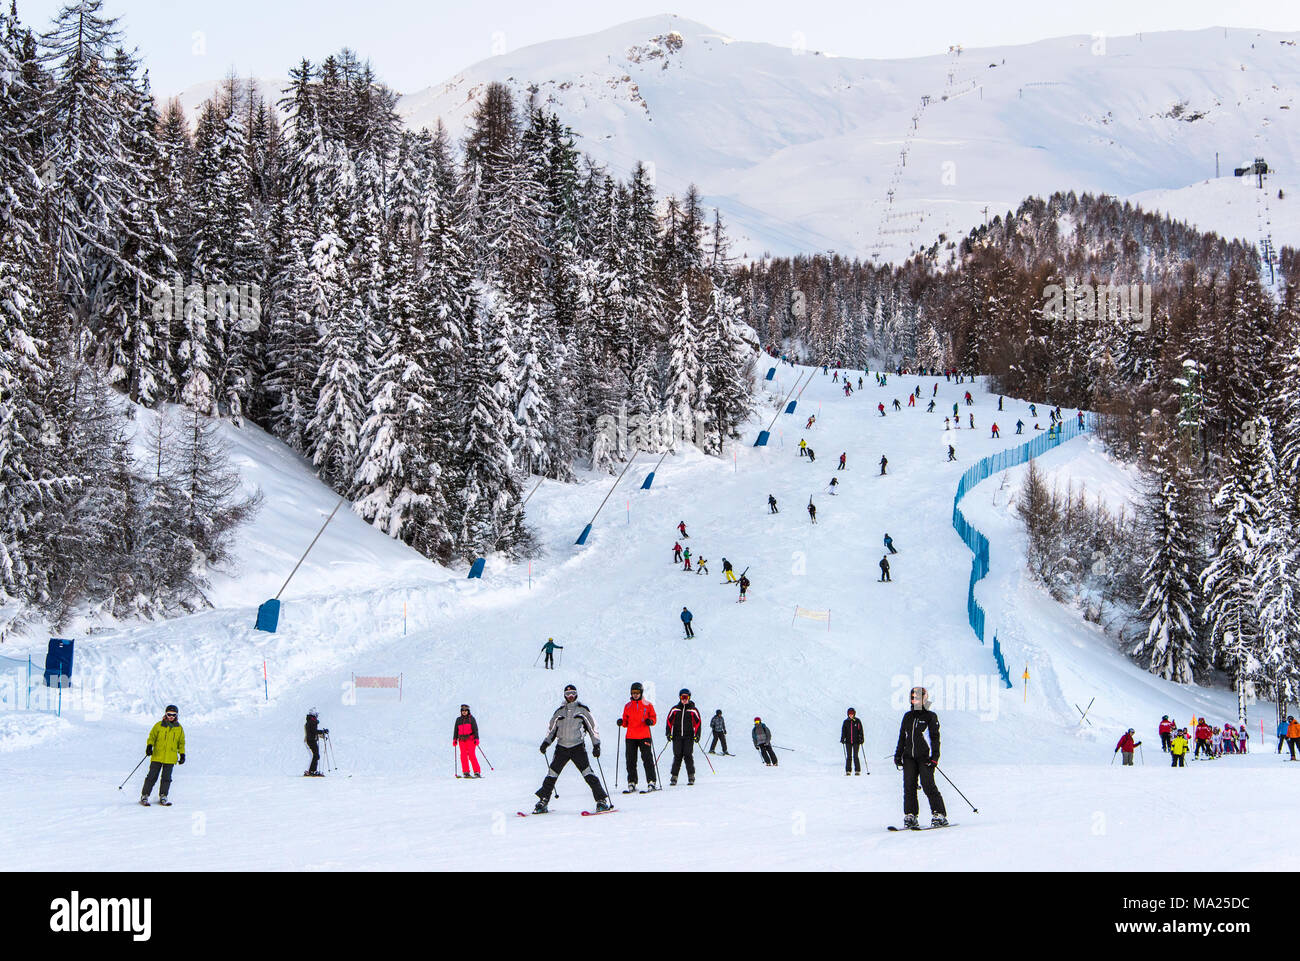 A ski piste in Pila ski resort, Aosta Valley, Italy - Stock Image